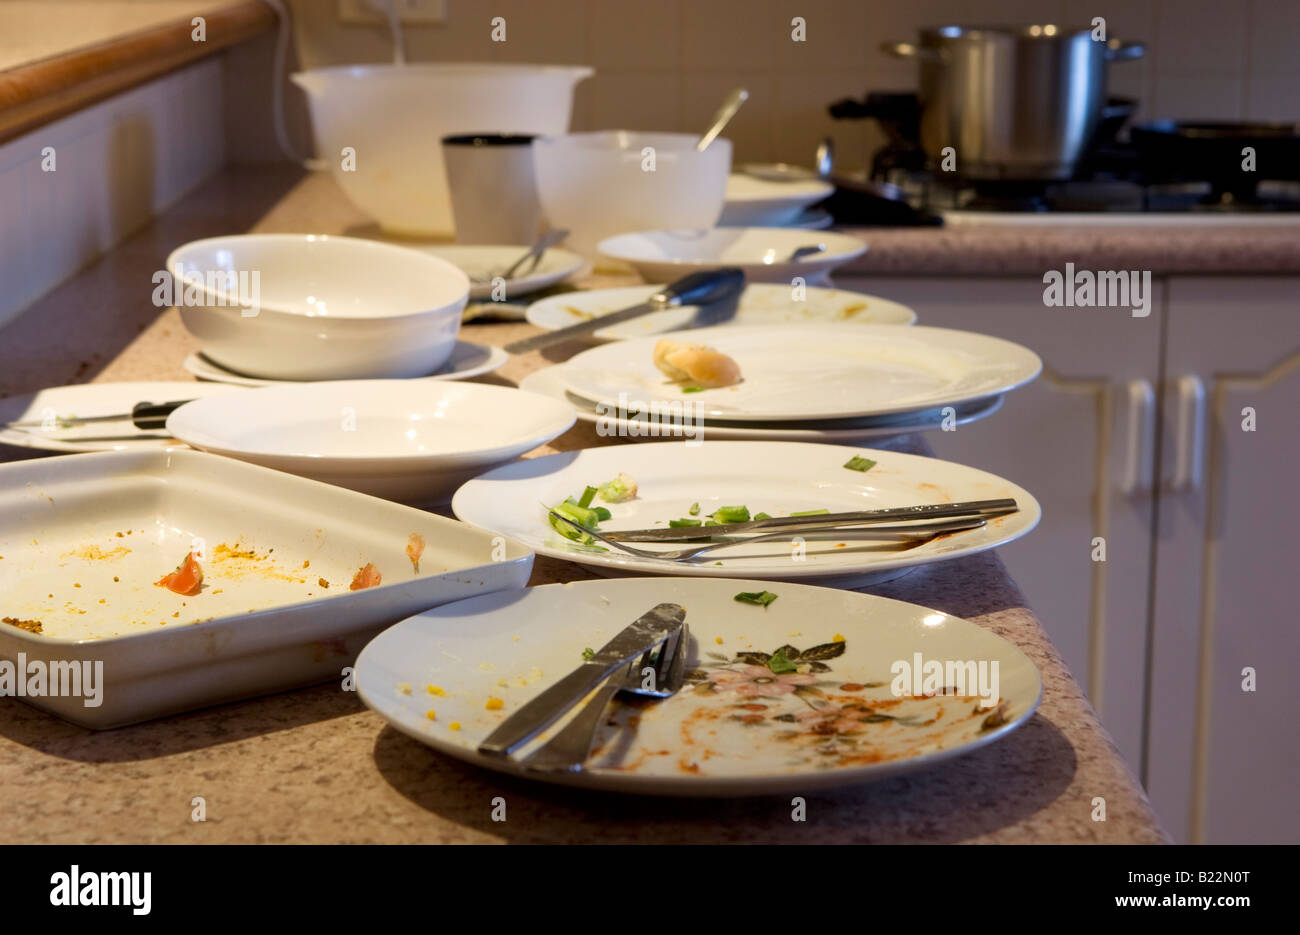 Magnificent Dirty Plates On A Kitchen Bench Stock Photo 18500072 Alamy Interior Design Ideas Clesiryabchikinfo